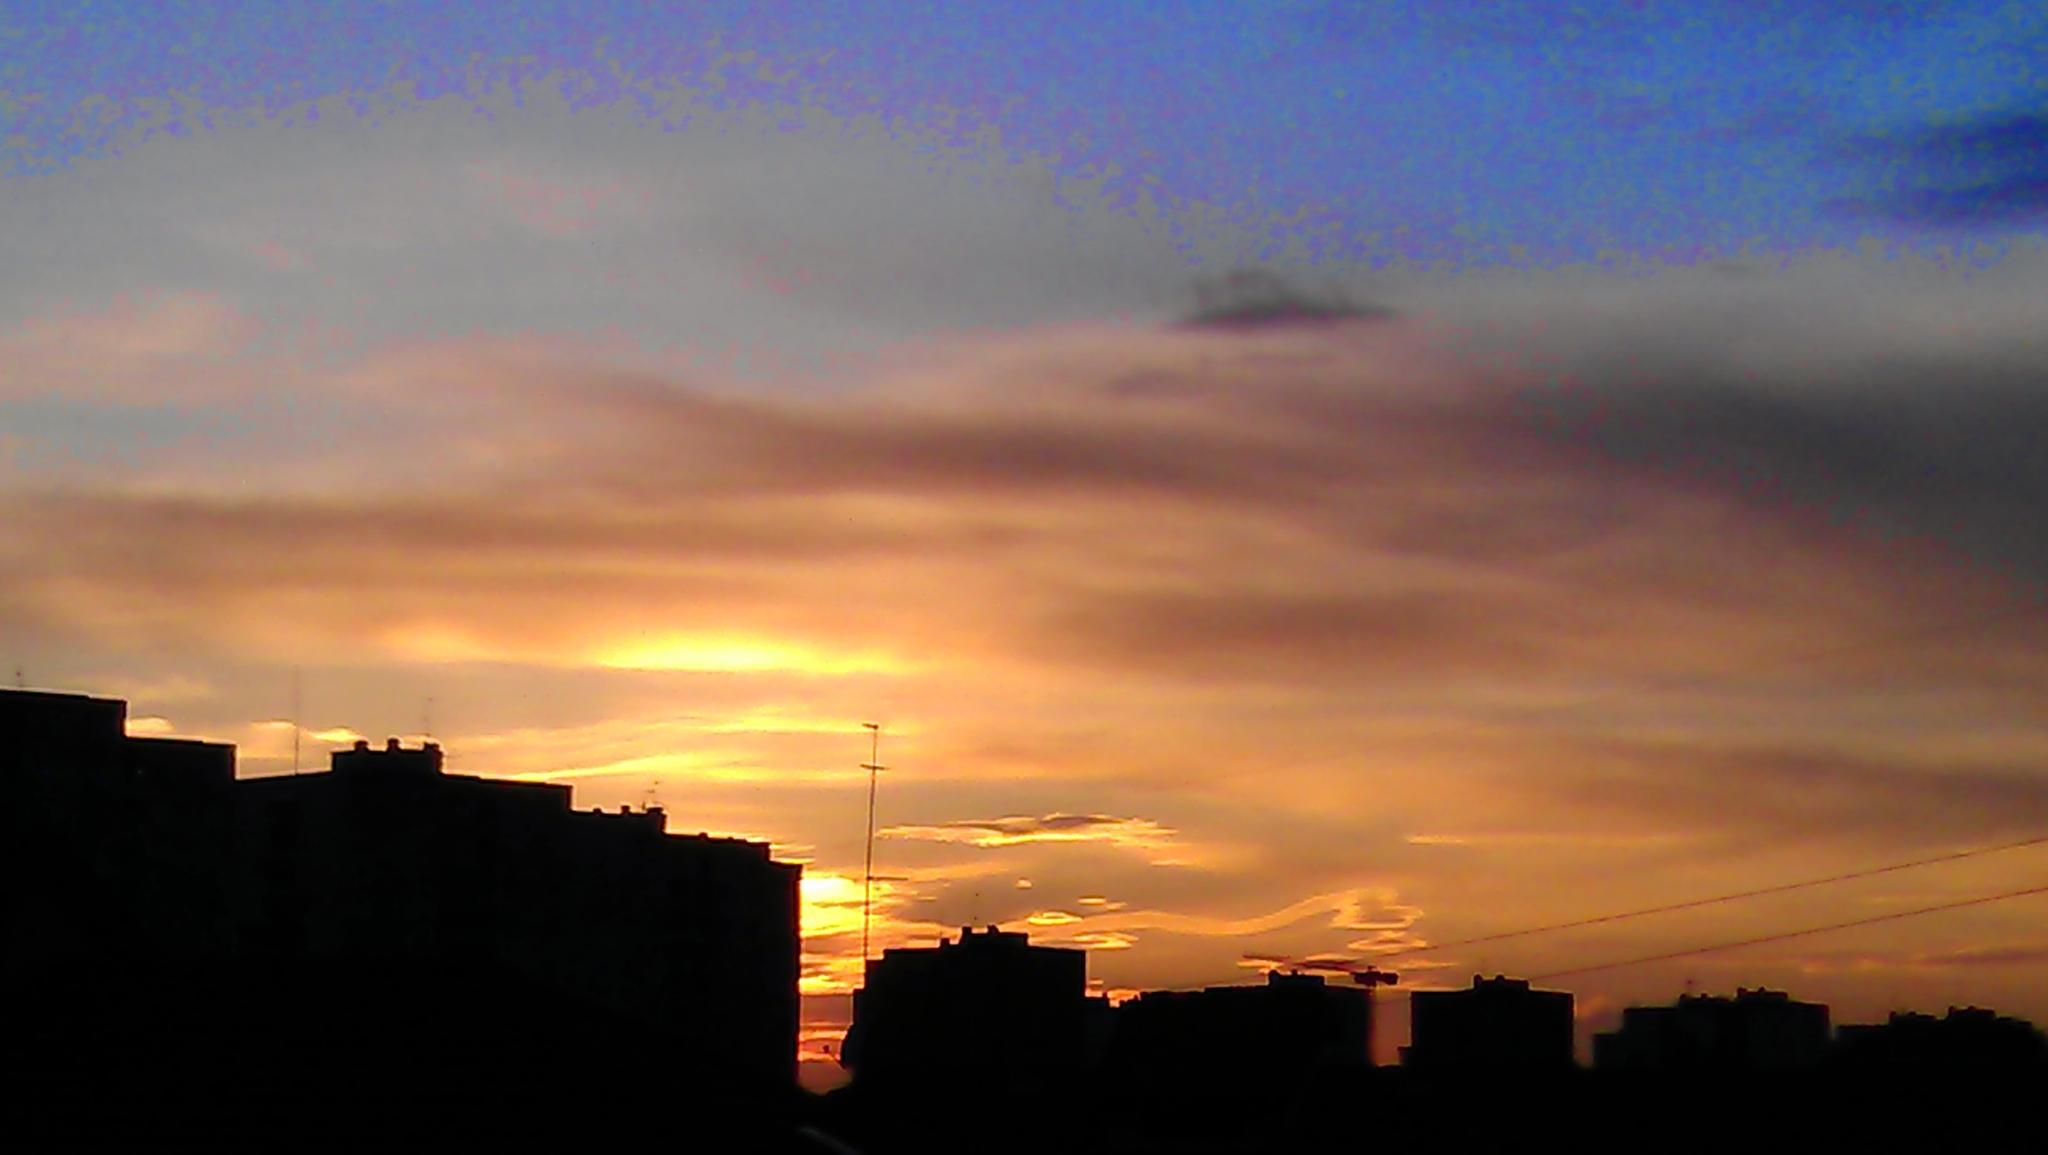 Sunset in Milan. by Paolo Pasquali